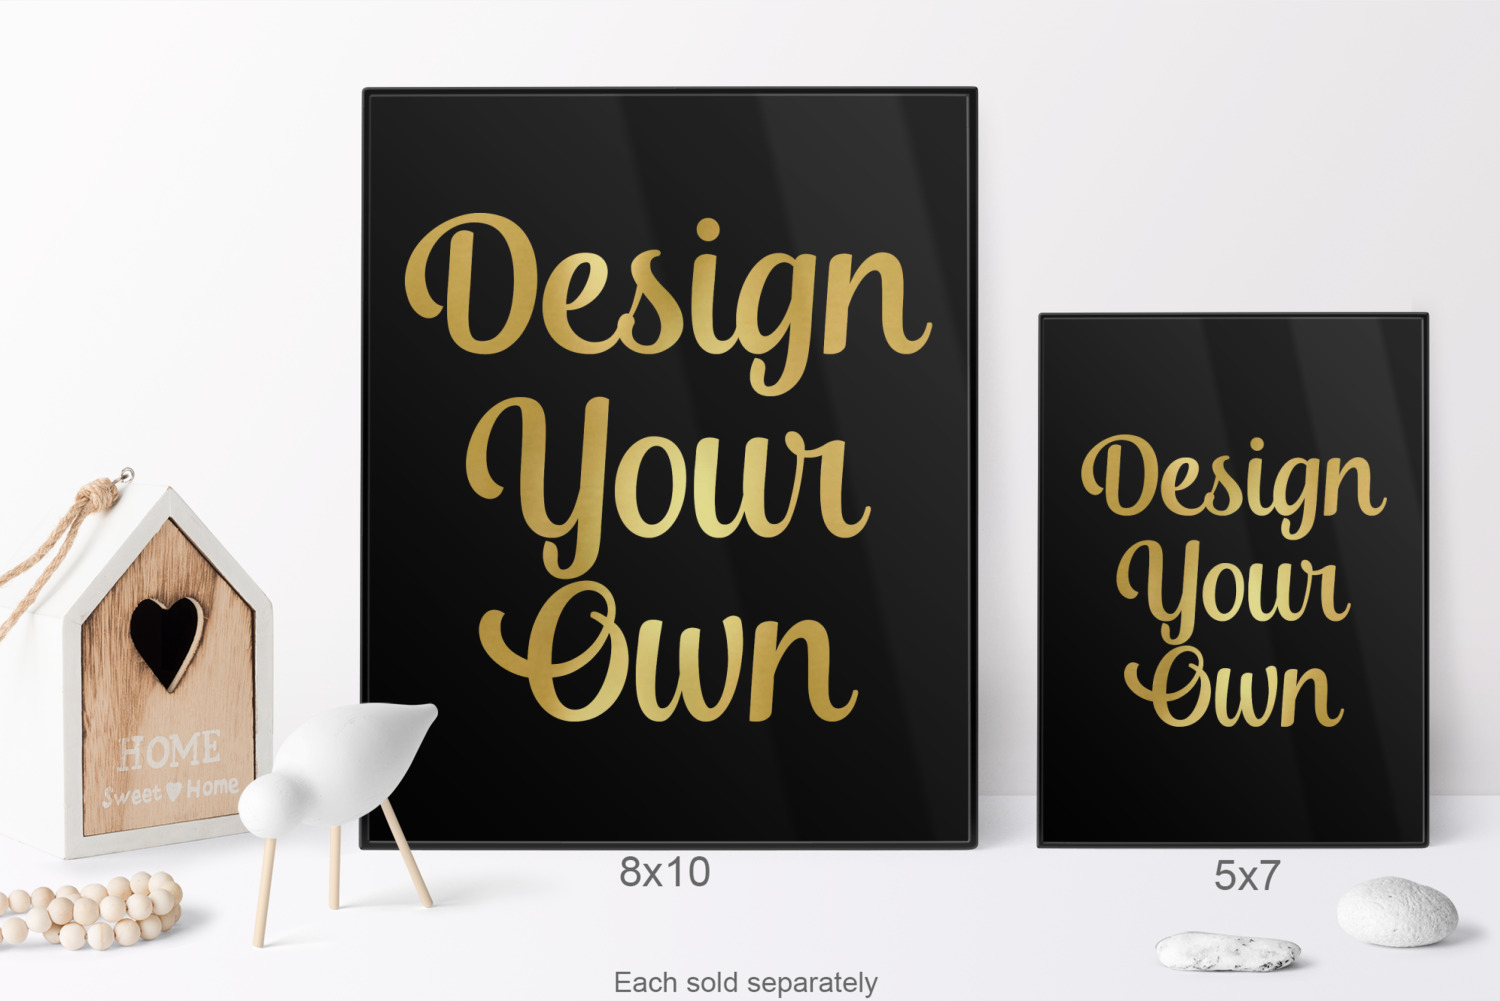 Design Your Own 8x10 Foil Wall Art Black Personalized